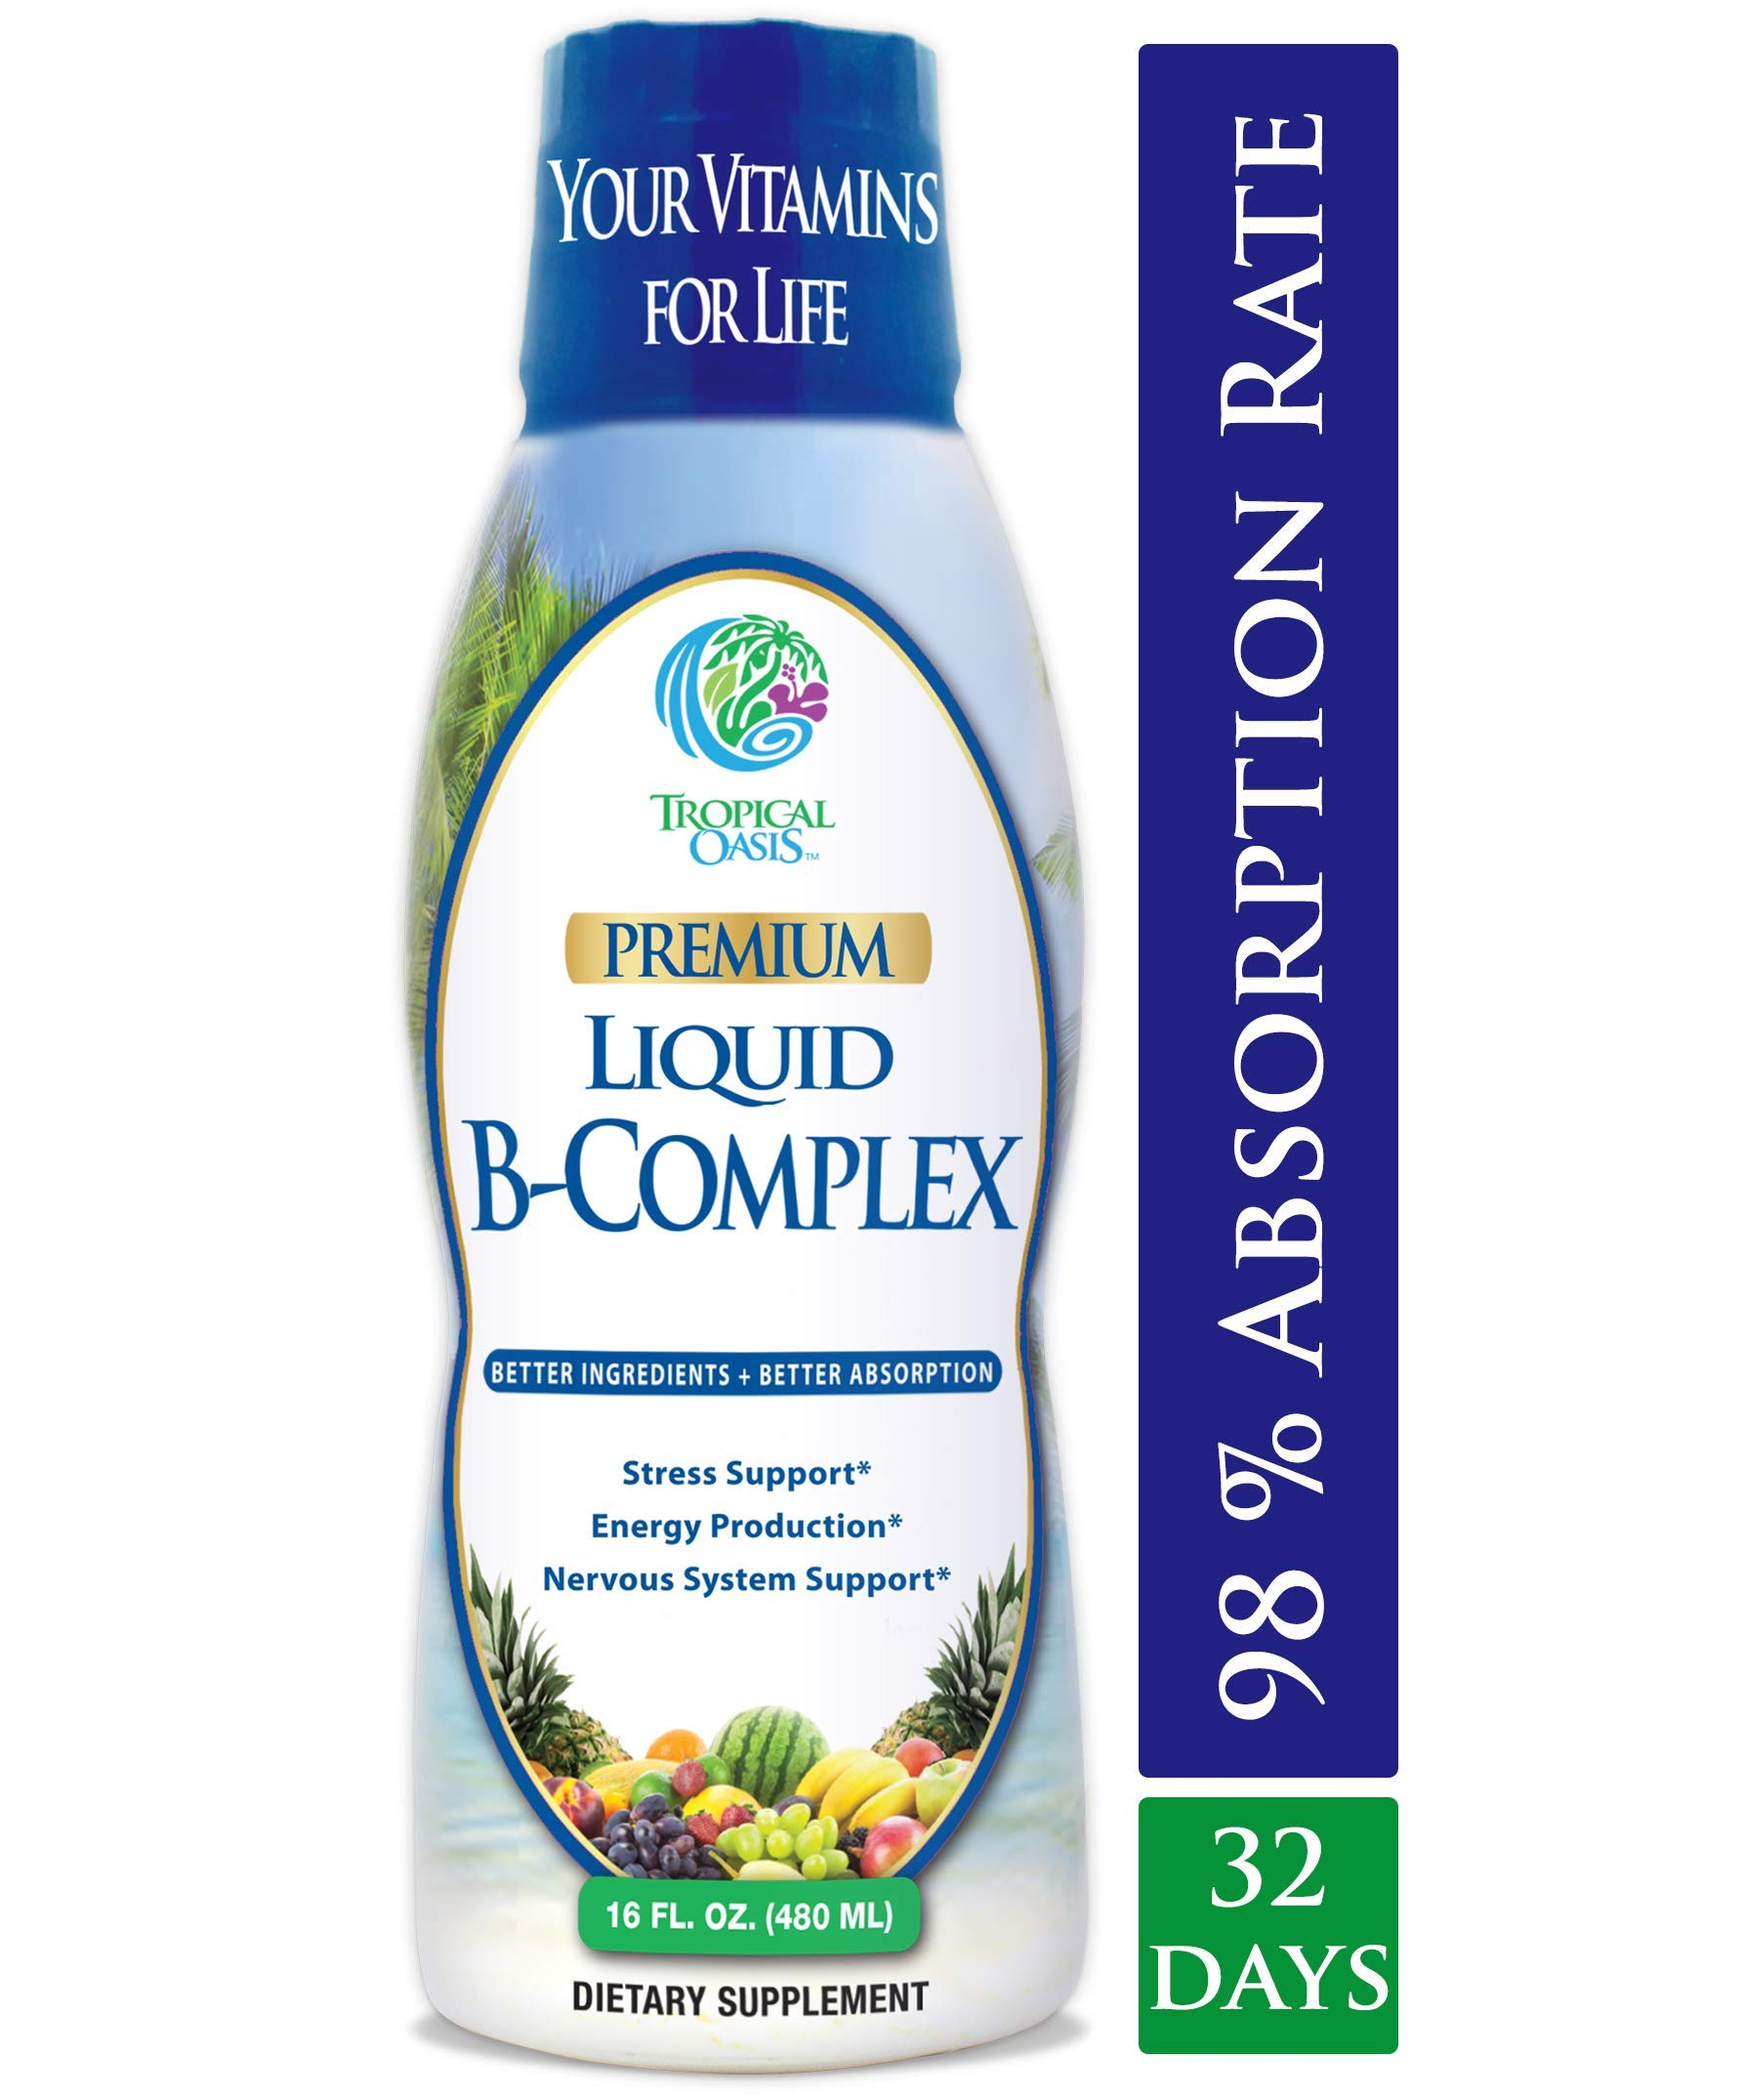 Premium Liquid B Complex Vitamin- Fast Absorbing Liquid B-Complex Supplement w/ all 8 B-vitamins, PLUS energizing herbal blend w/ Ginseng, Ginkgo, and Eleuthero Root - Vegan, NON-GMO - 16oz, 32 Serv by Tropical Oasis